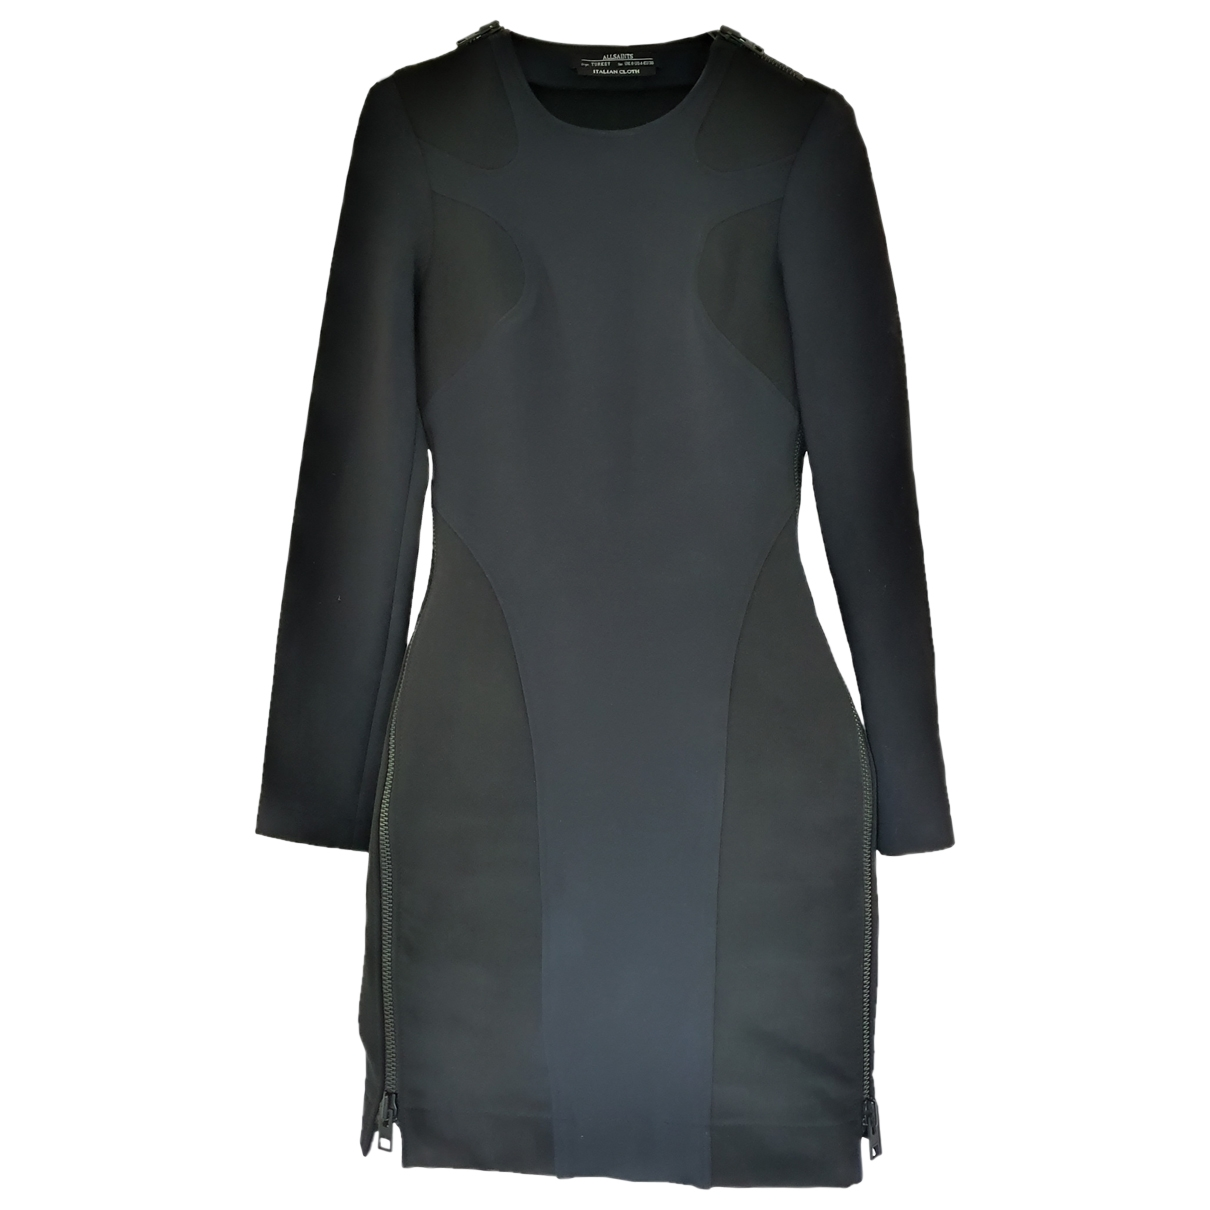 All Saints \N Kleid in  Schwarz Viskose